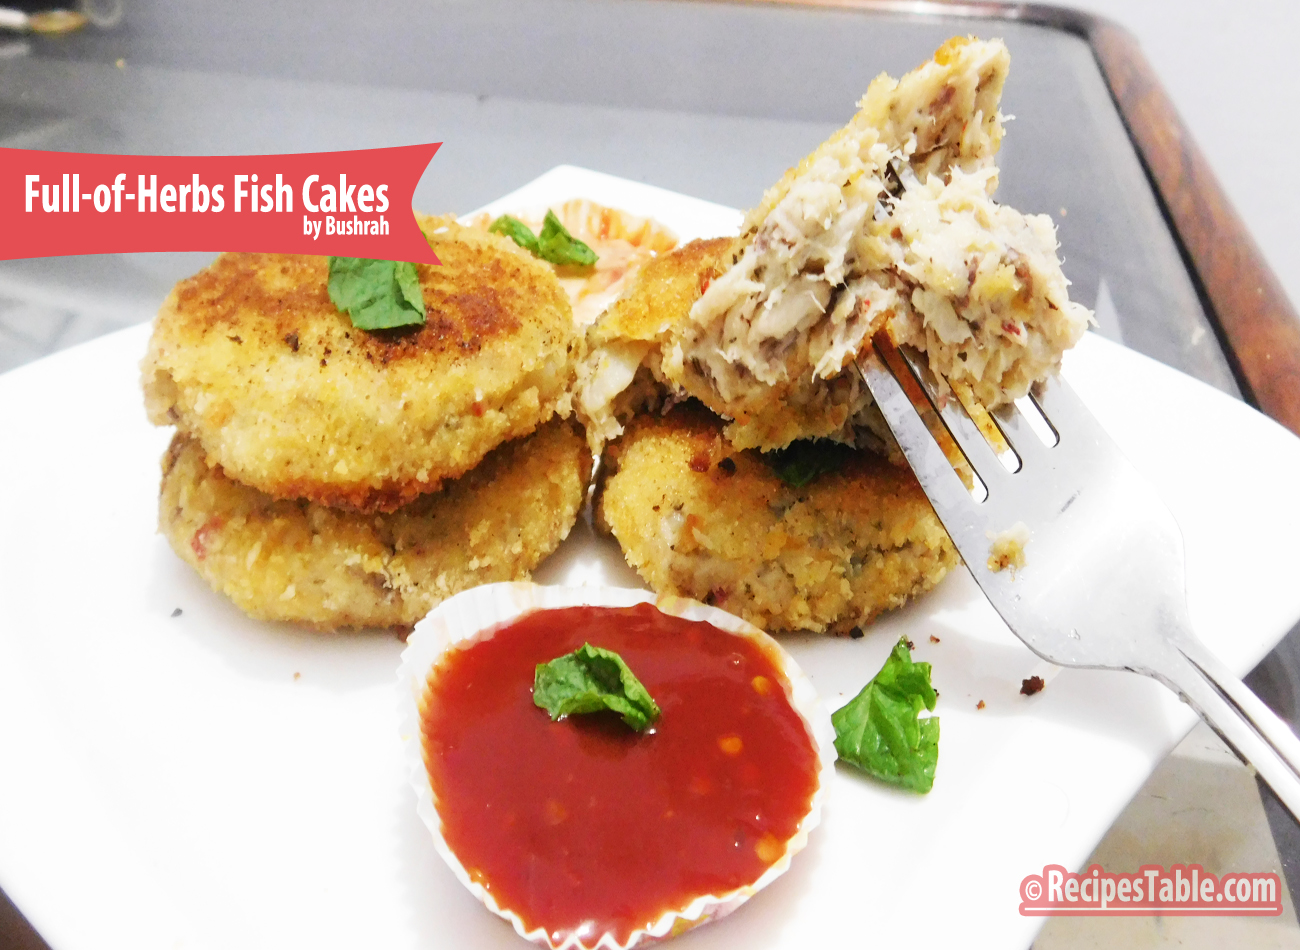 Full-of-Herbs Fish Cakes